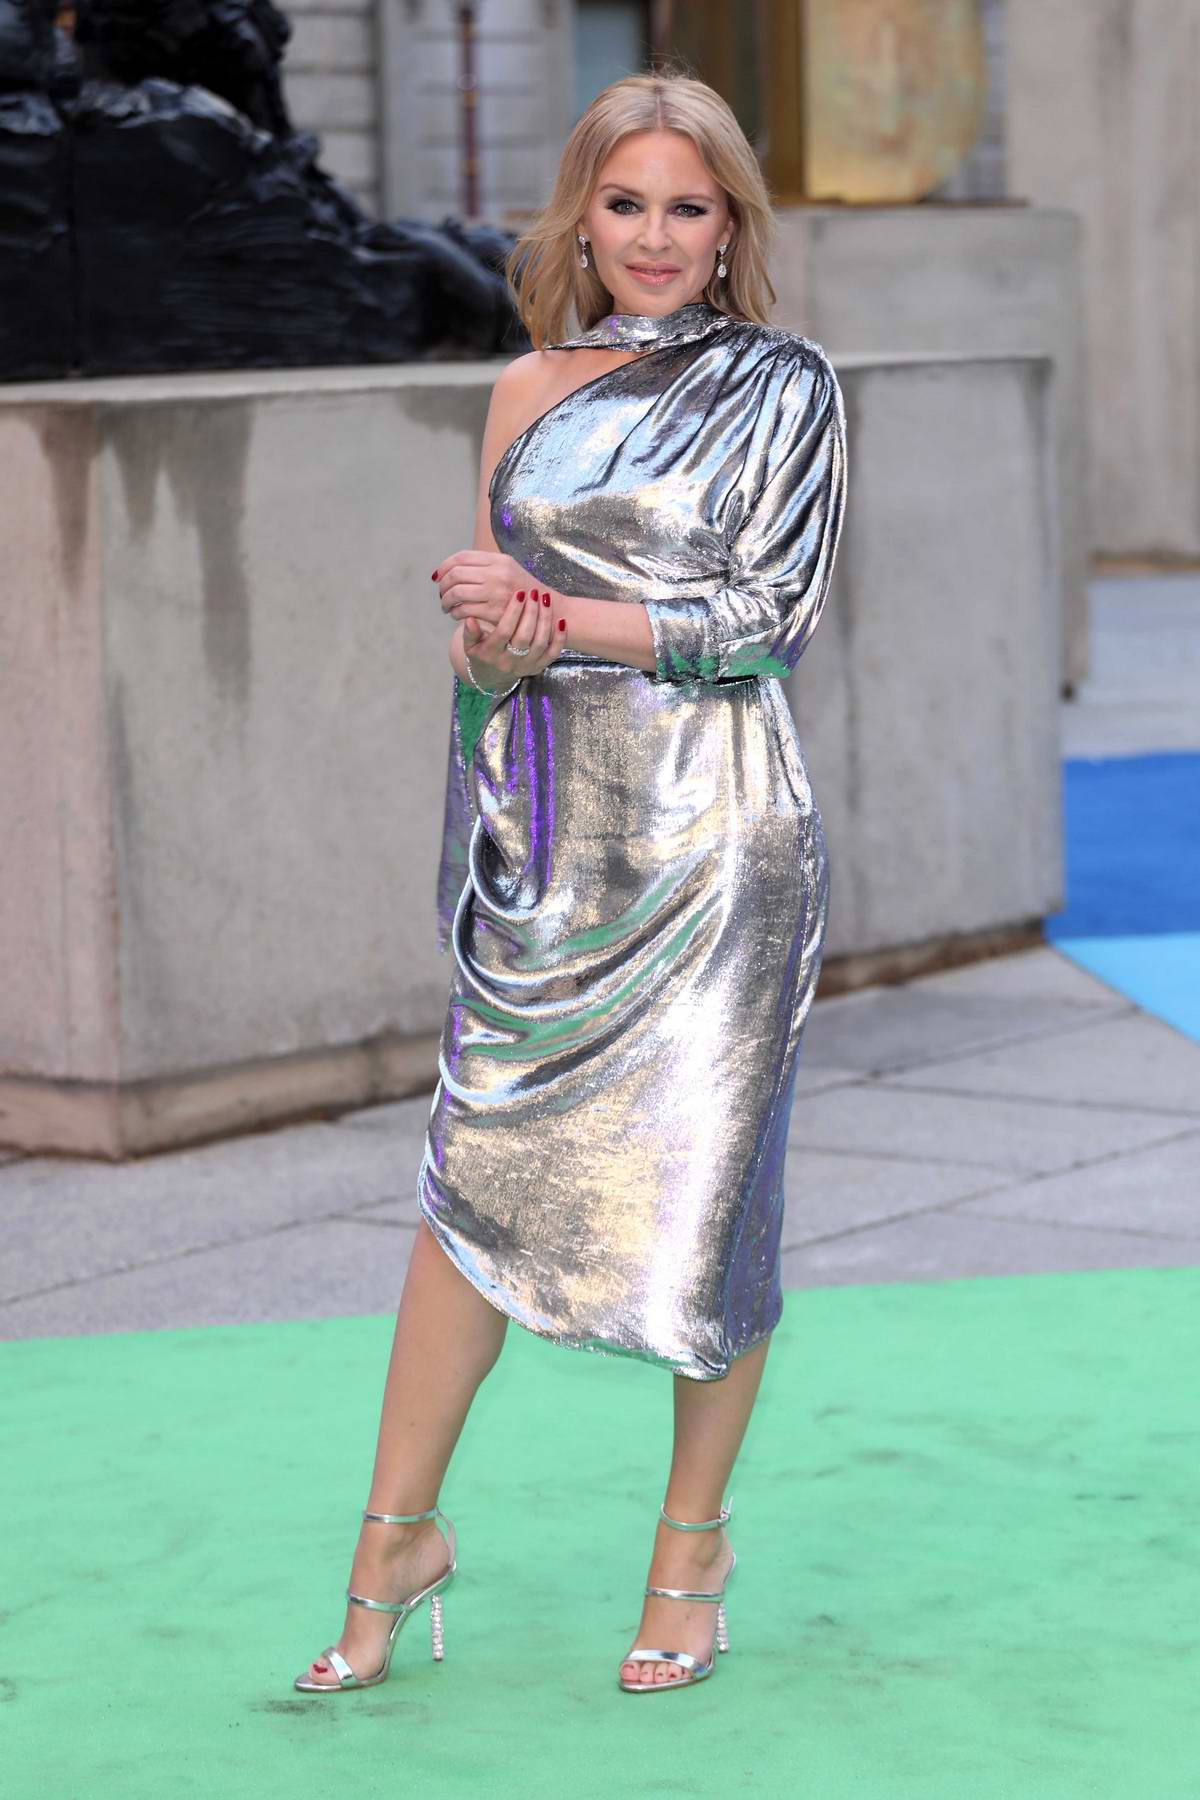 Kylie Minogue attends the Royal Academy of Arts Summer Exhibition Preview Party held at Burlington House in London, UK